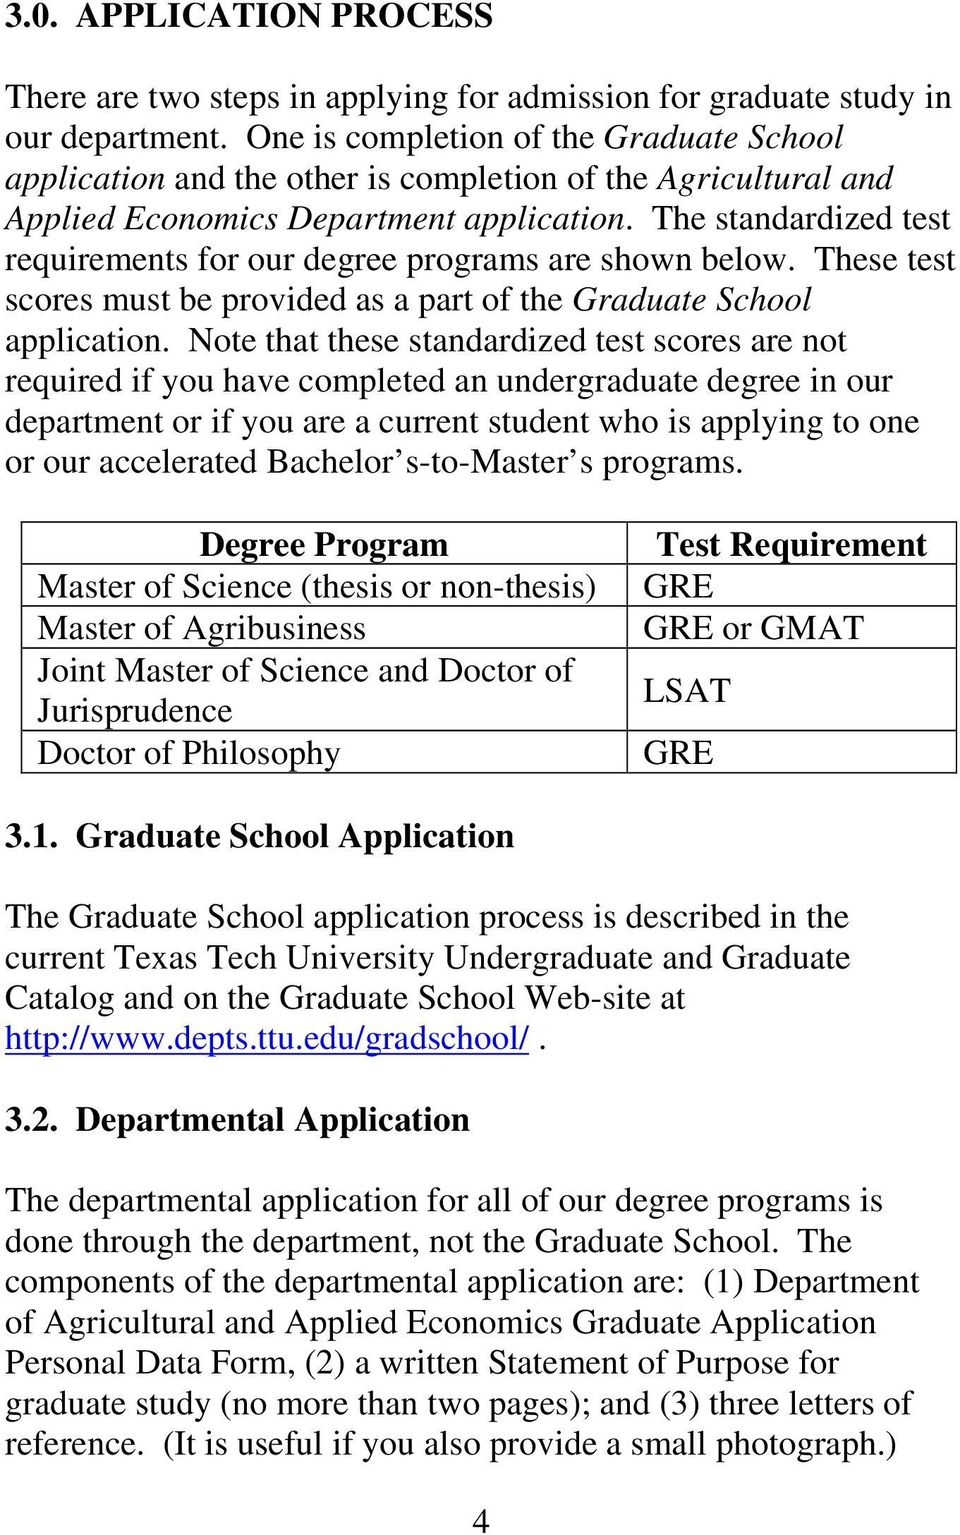 The standardized test requirements for our degree programs are shown below. These test scores must be provided as a part of the Graduate School application.